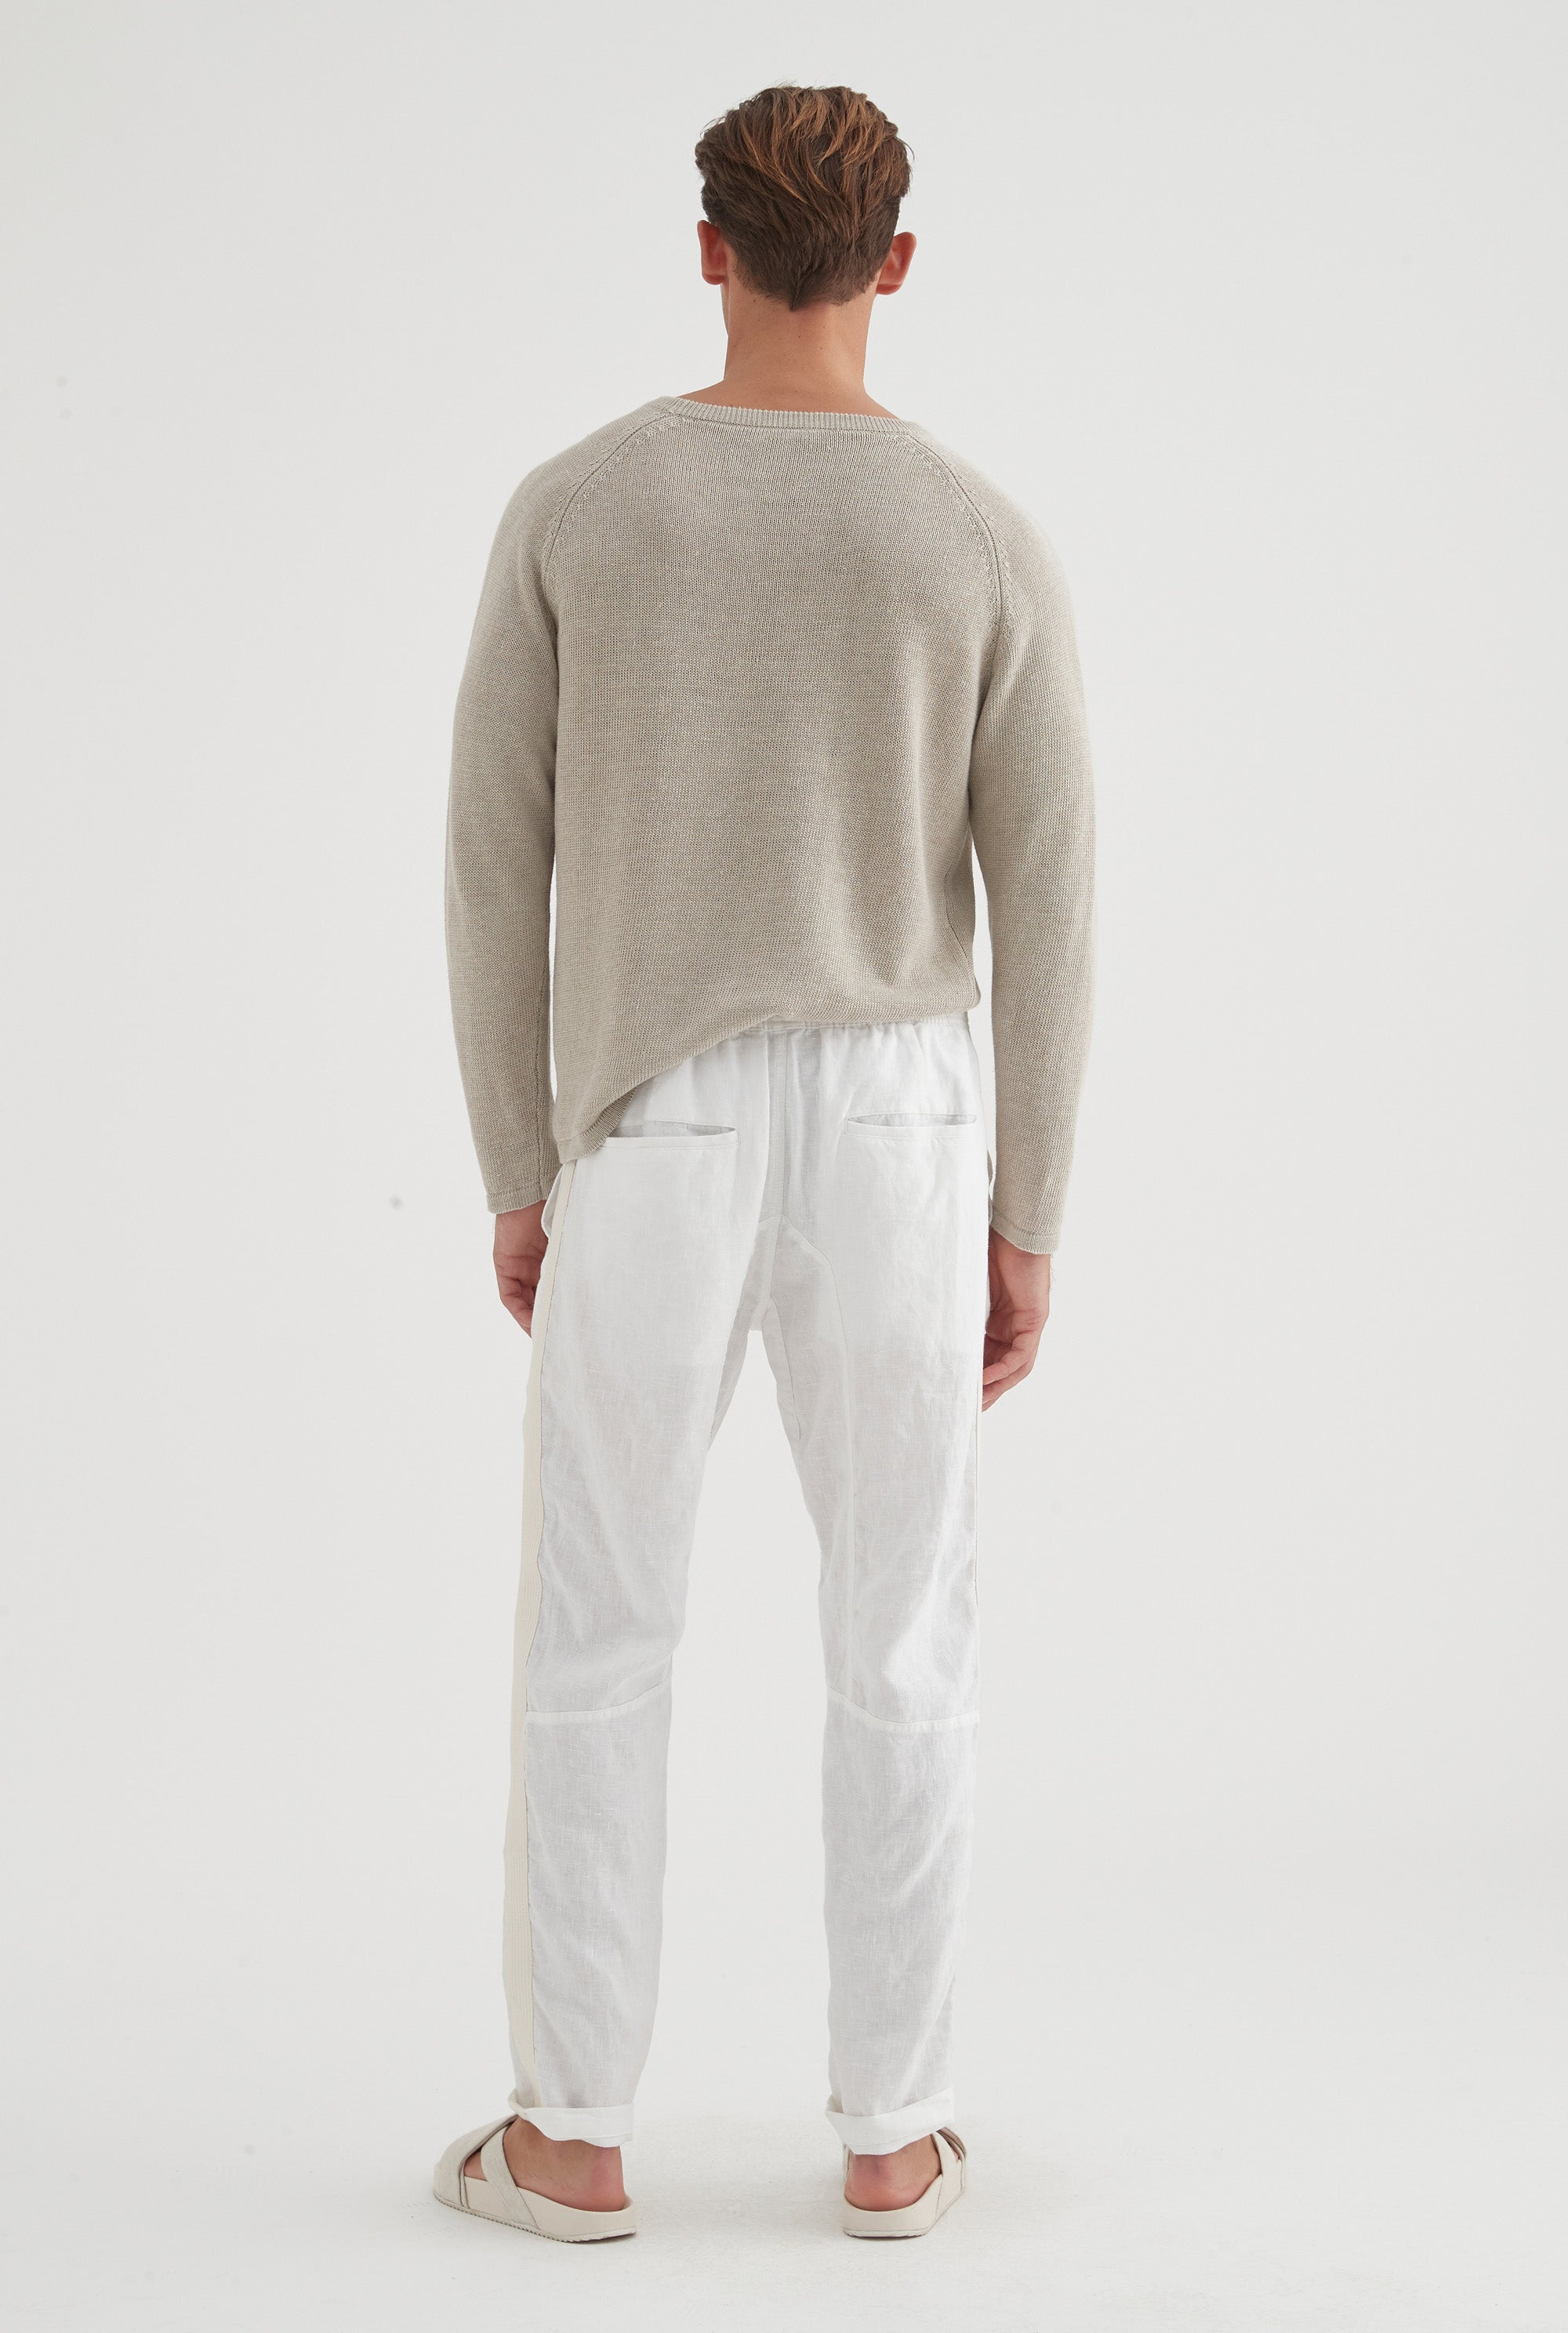 Tailored Lounge Pant - White/HS Tape